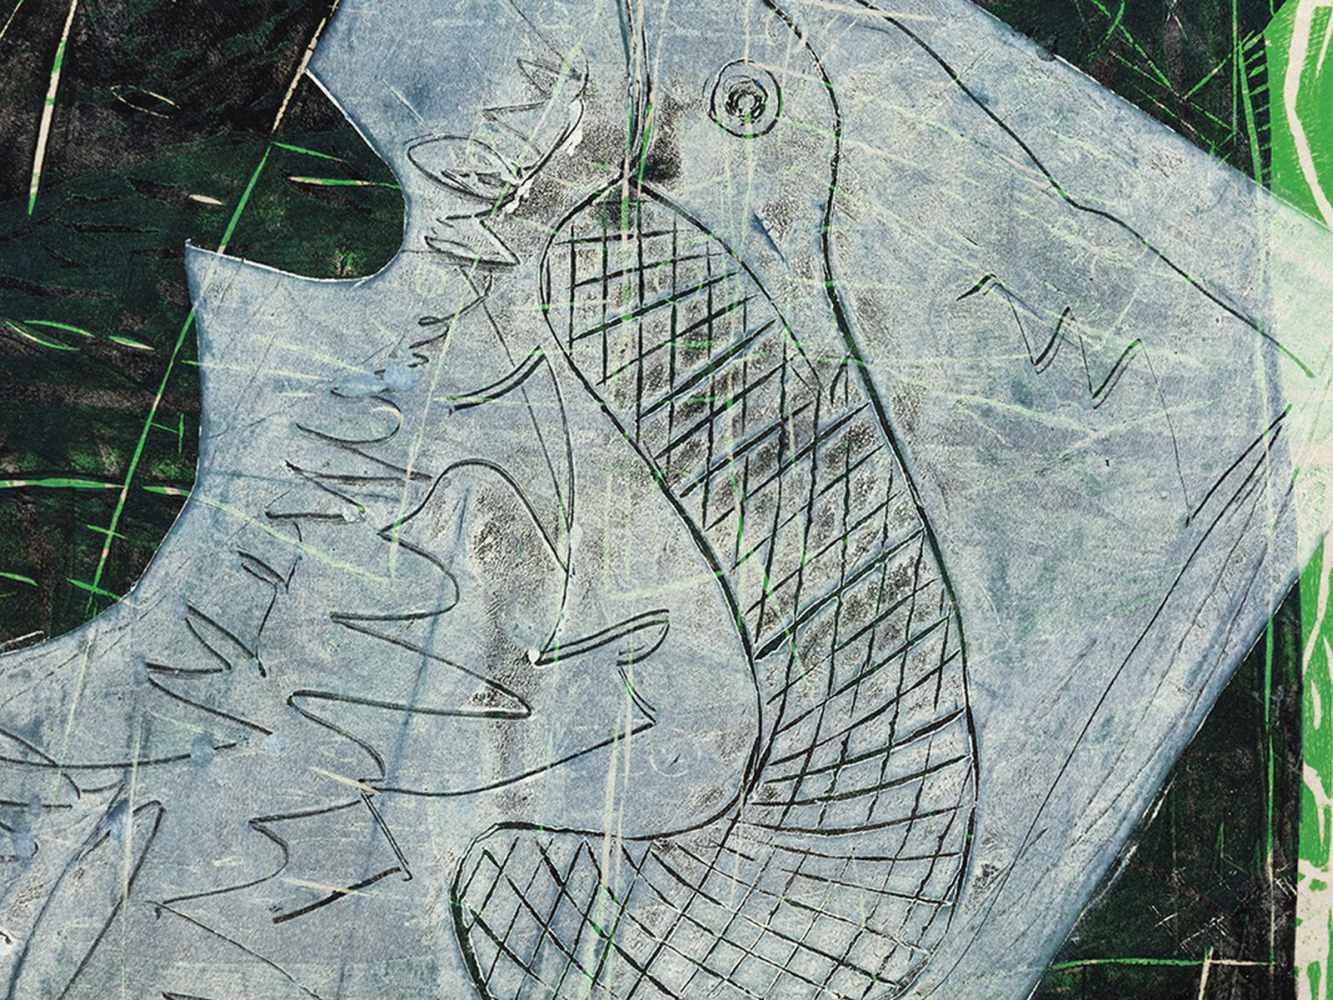 Ruth Tesmar, Symposion, 12 Woodcuts , 1999/2000 - Image 6 of 13